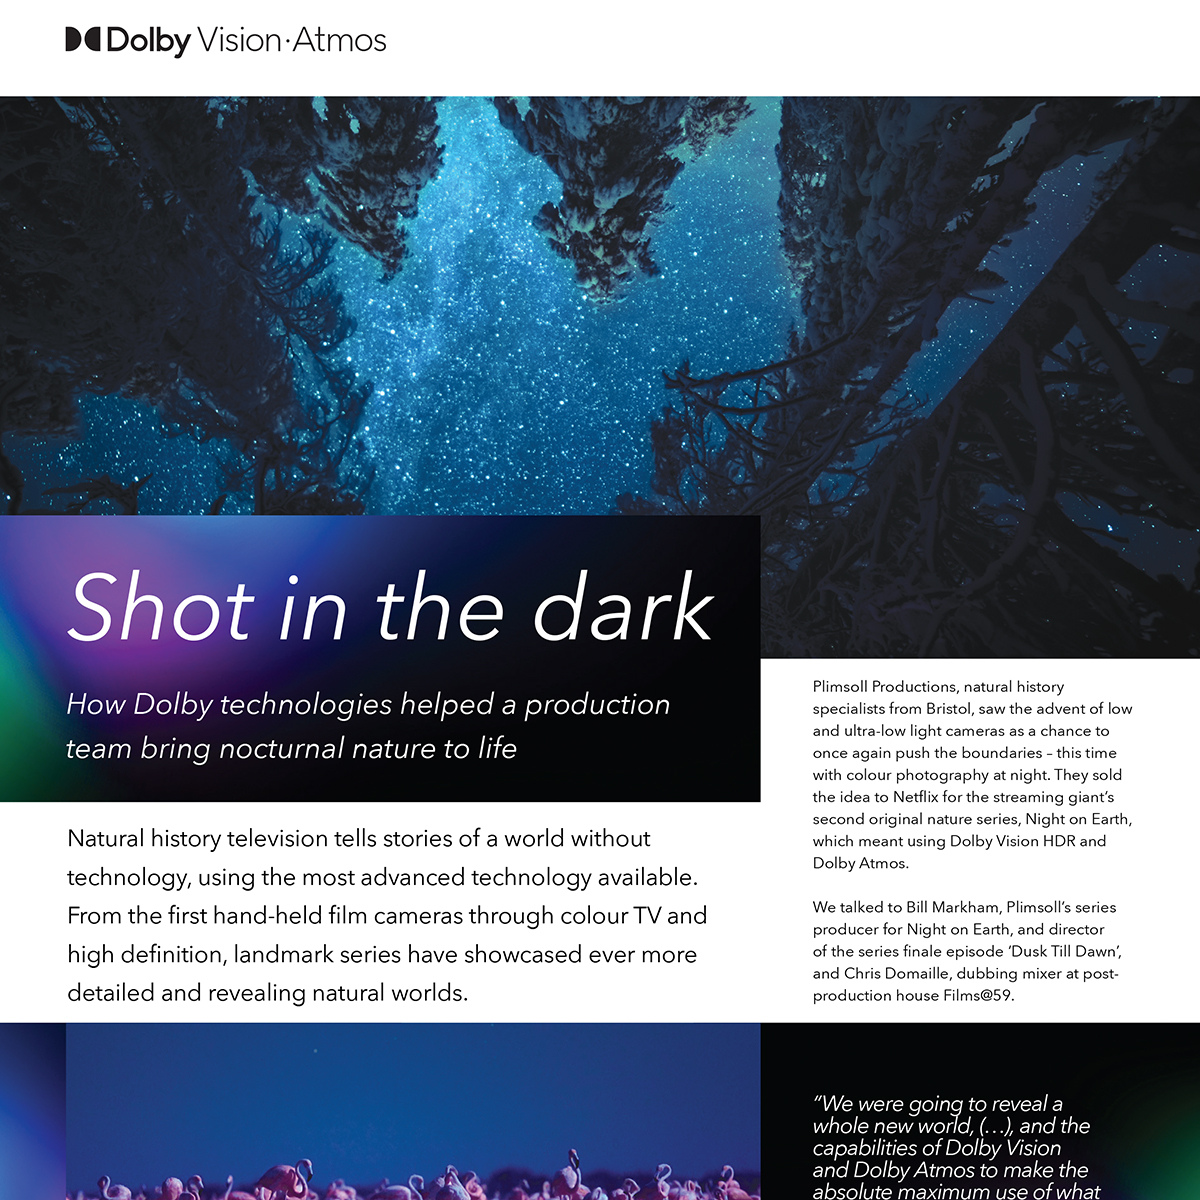 Dolby Vision Atmos Case Study